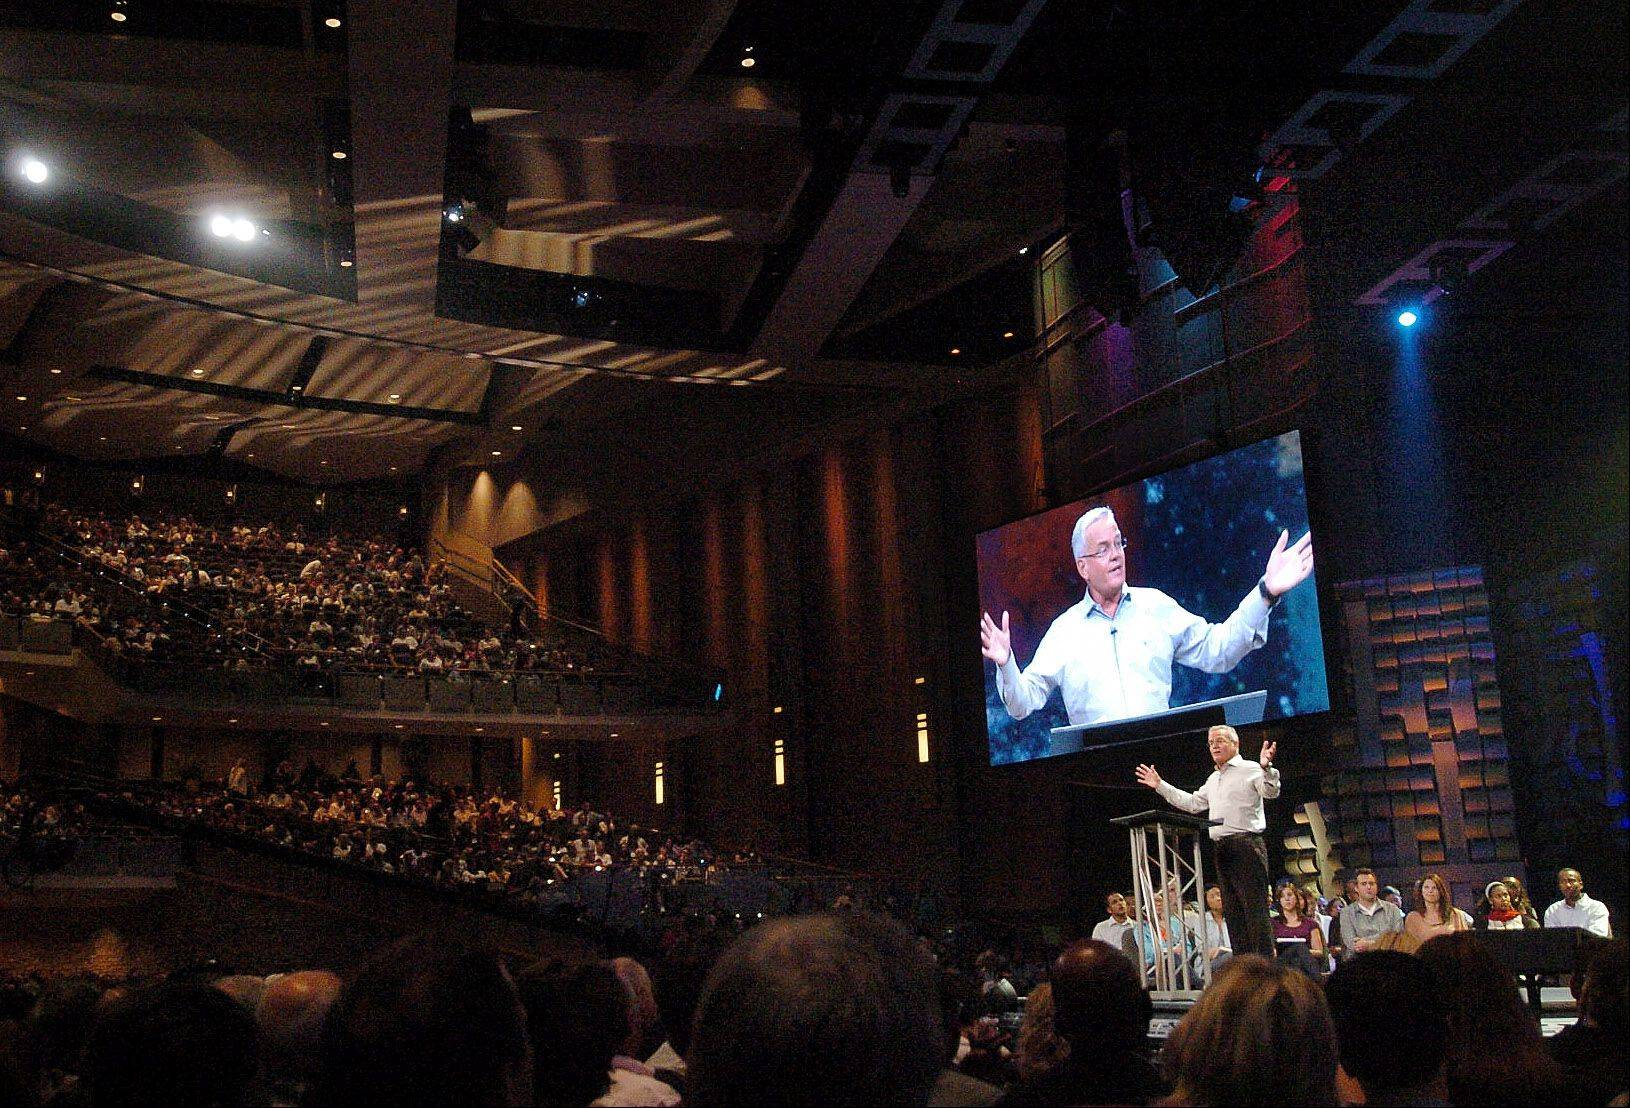 Bill Hybels, founder and senior pastor of Willow Creek Community Church, speaks at the Global Leadership Summit.